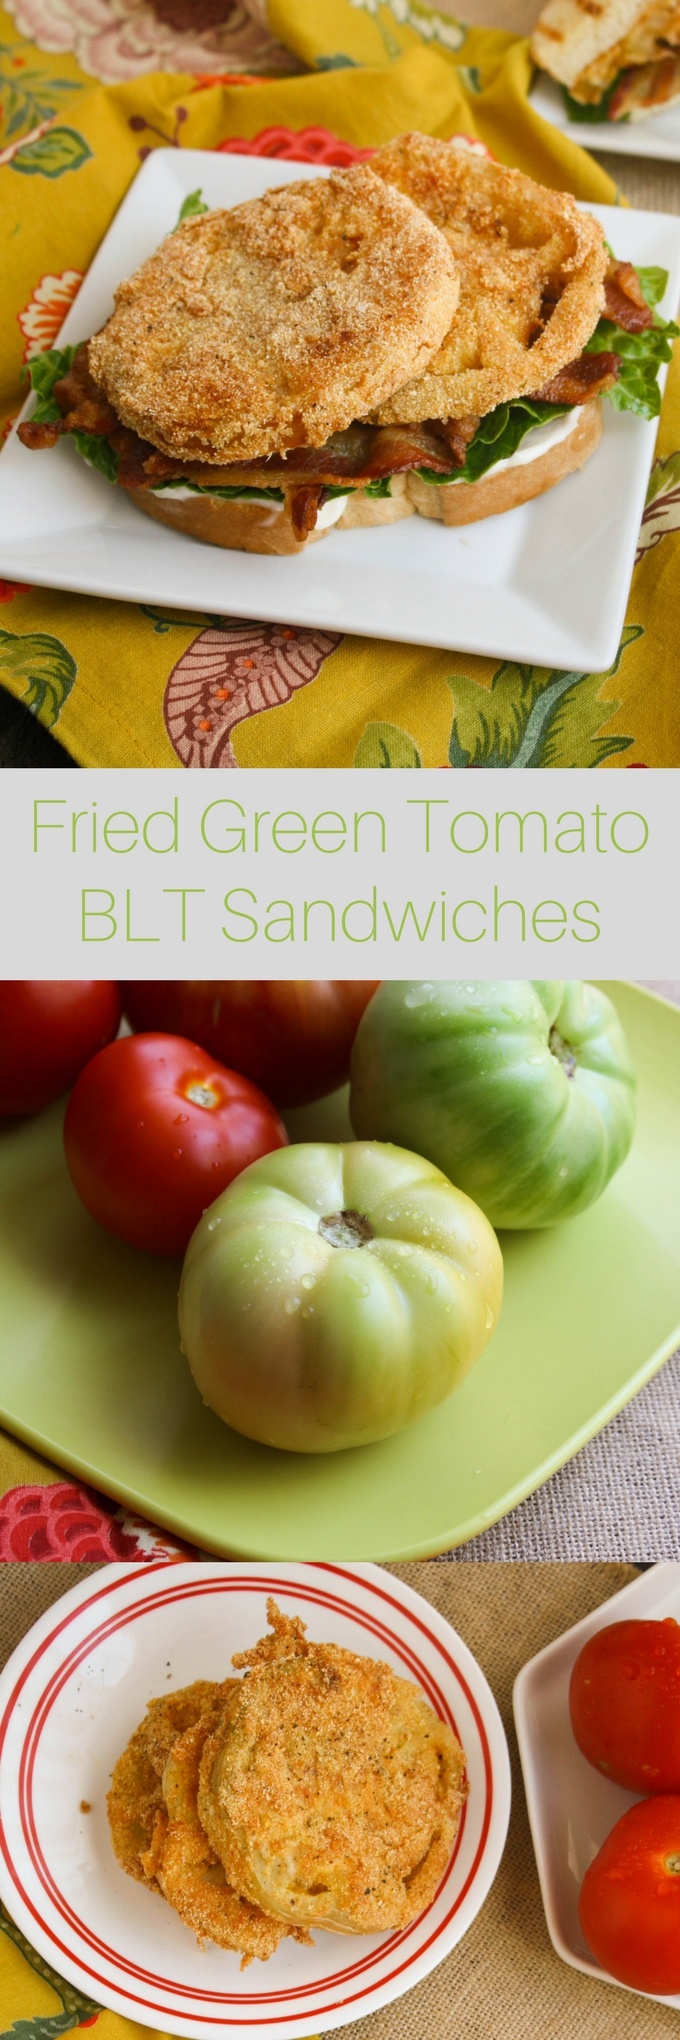 Fried Green Tomato BLT Sandwiches are a great twist on a classic. You'll love the flavors in these sandwiches, perfect for lunch or dinner!